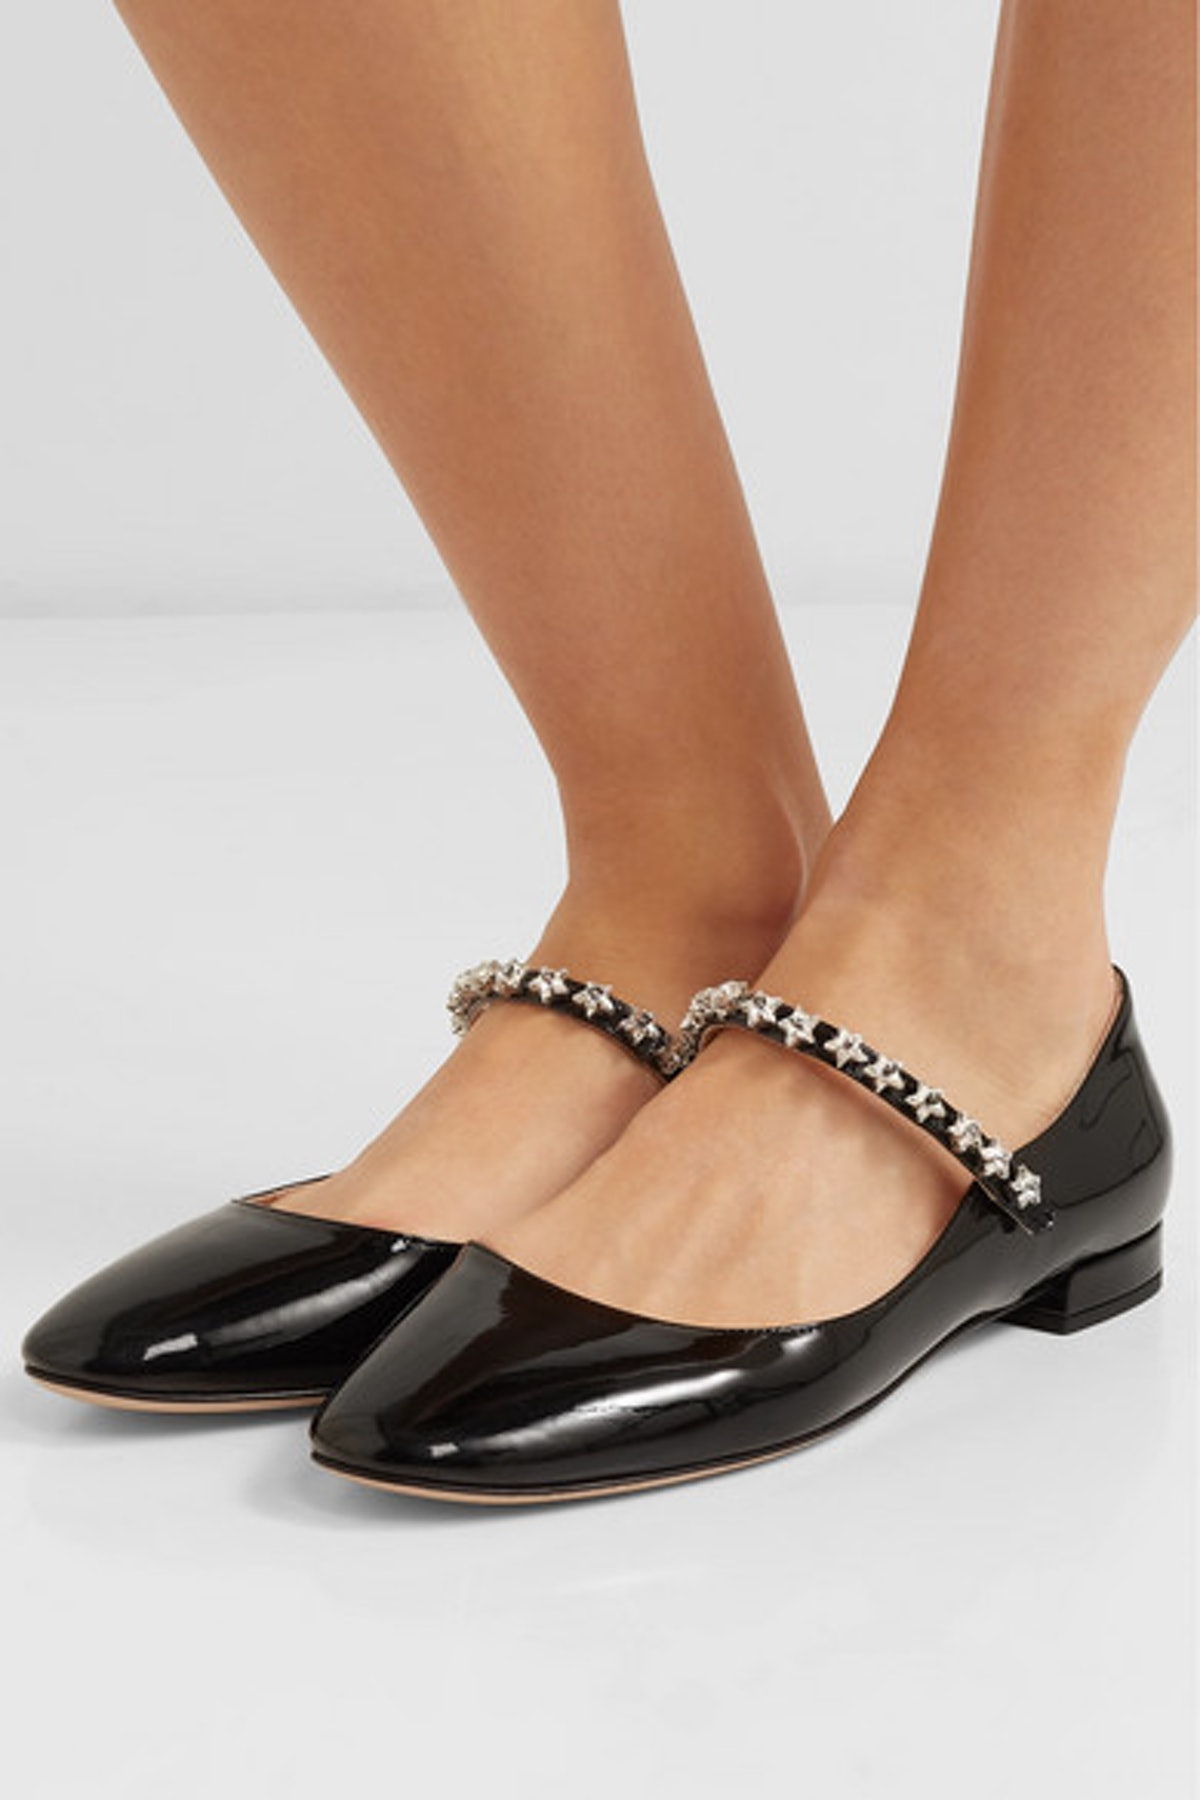 Crystal-Embellished Patent-Leather Mary Jane Ballet Flats